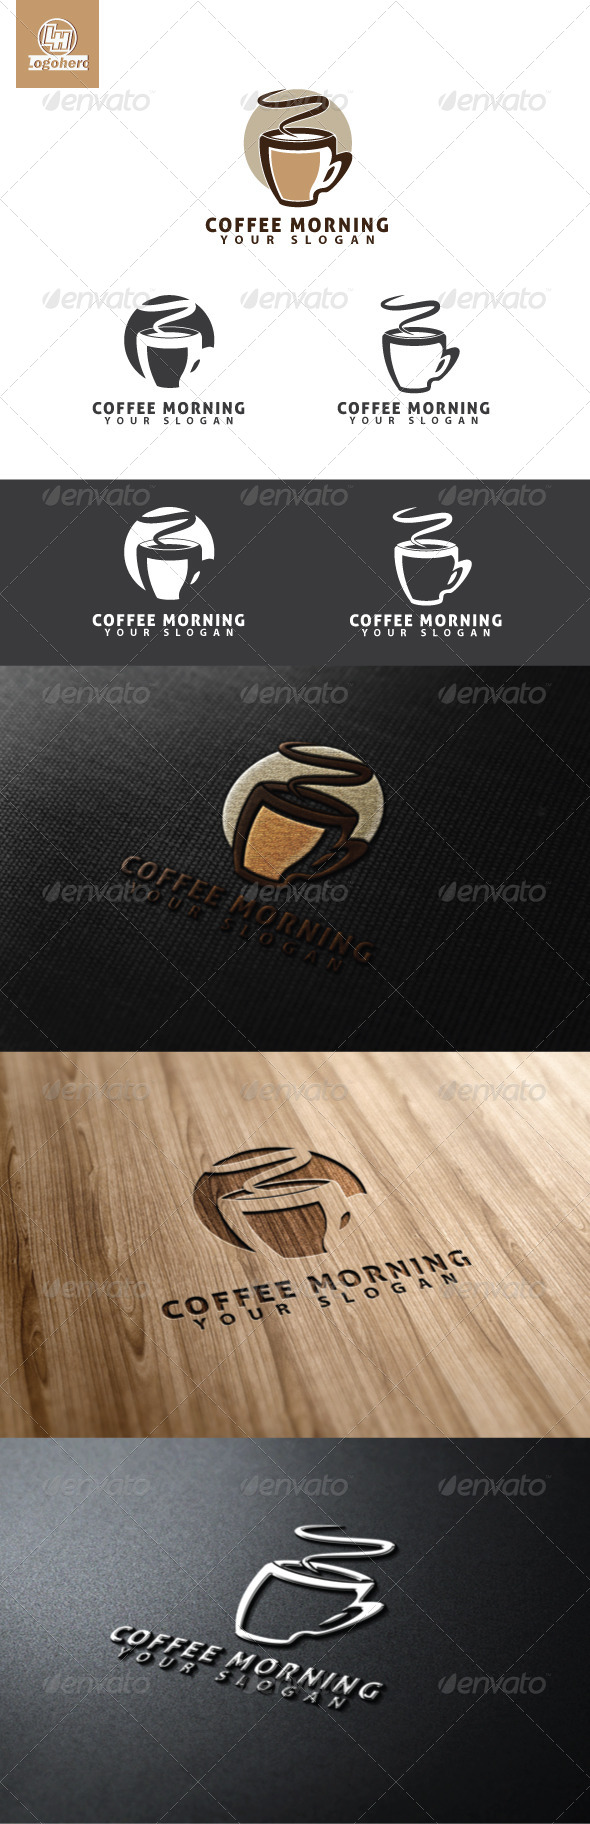 GraphicRiver Coffee Morning Logo Template 4635425